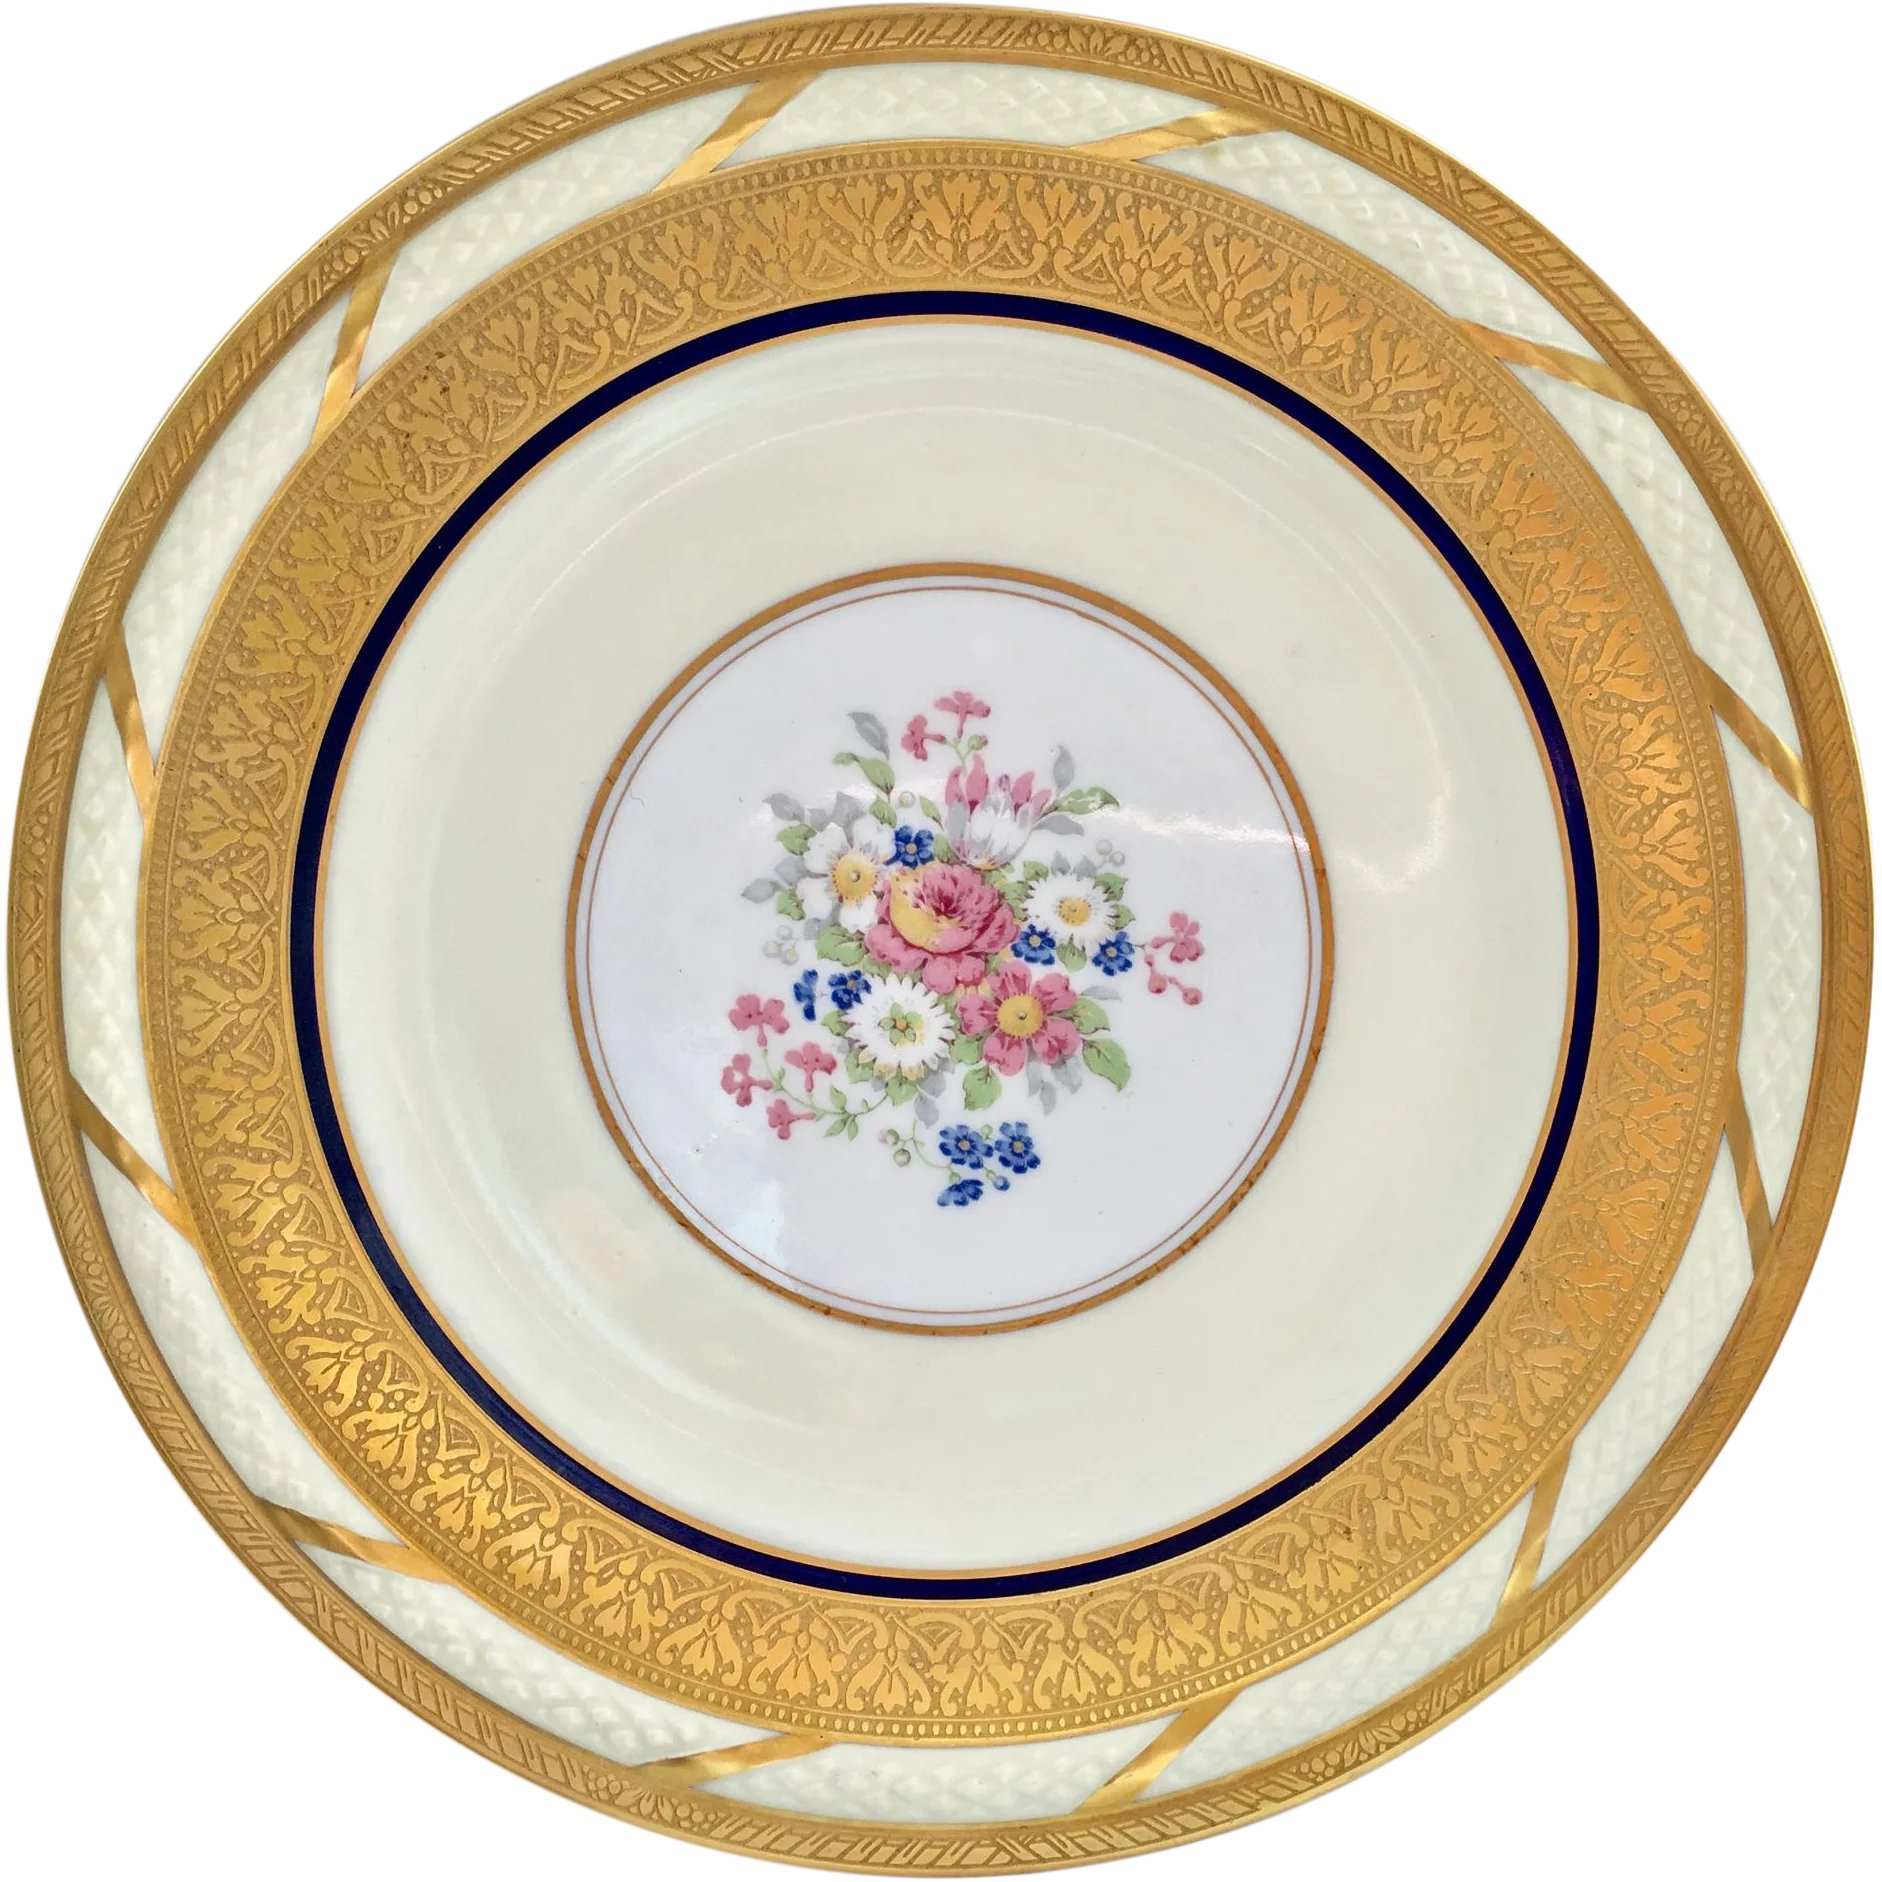 French China La Cloche Antique Gold Encrusted Dinner Plates T\u0026V  Maggie Belle\u0027s Memories | Ruby Lane  sc 1 st  Ruby Lane & French China La Cloche Antique Gold Encrusted Dinner Plates T\u0026V ...